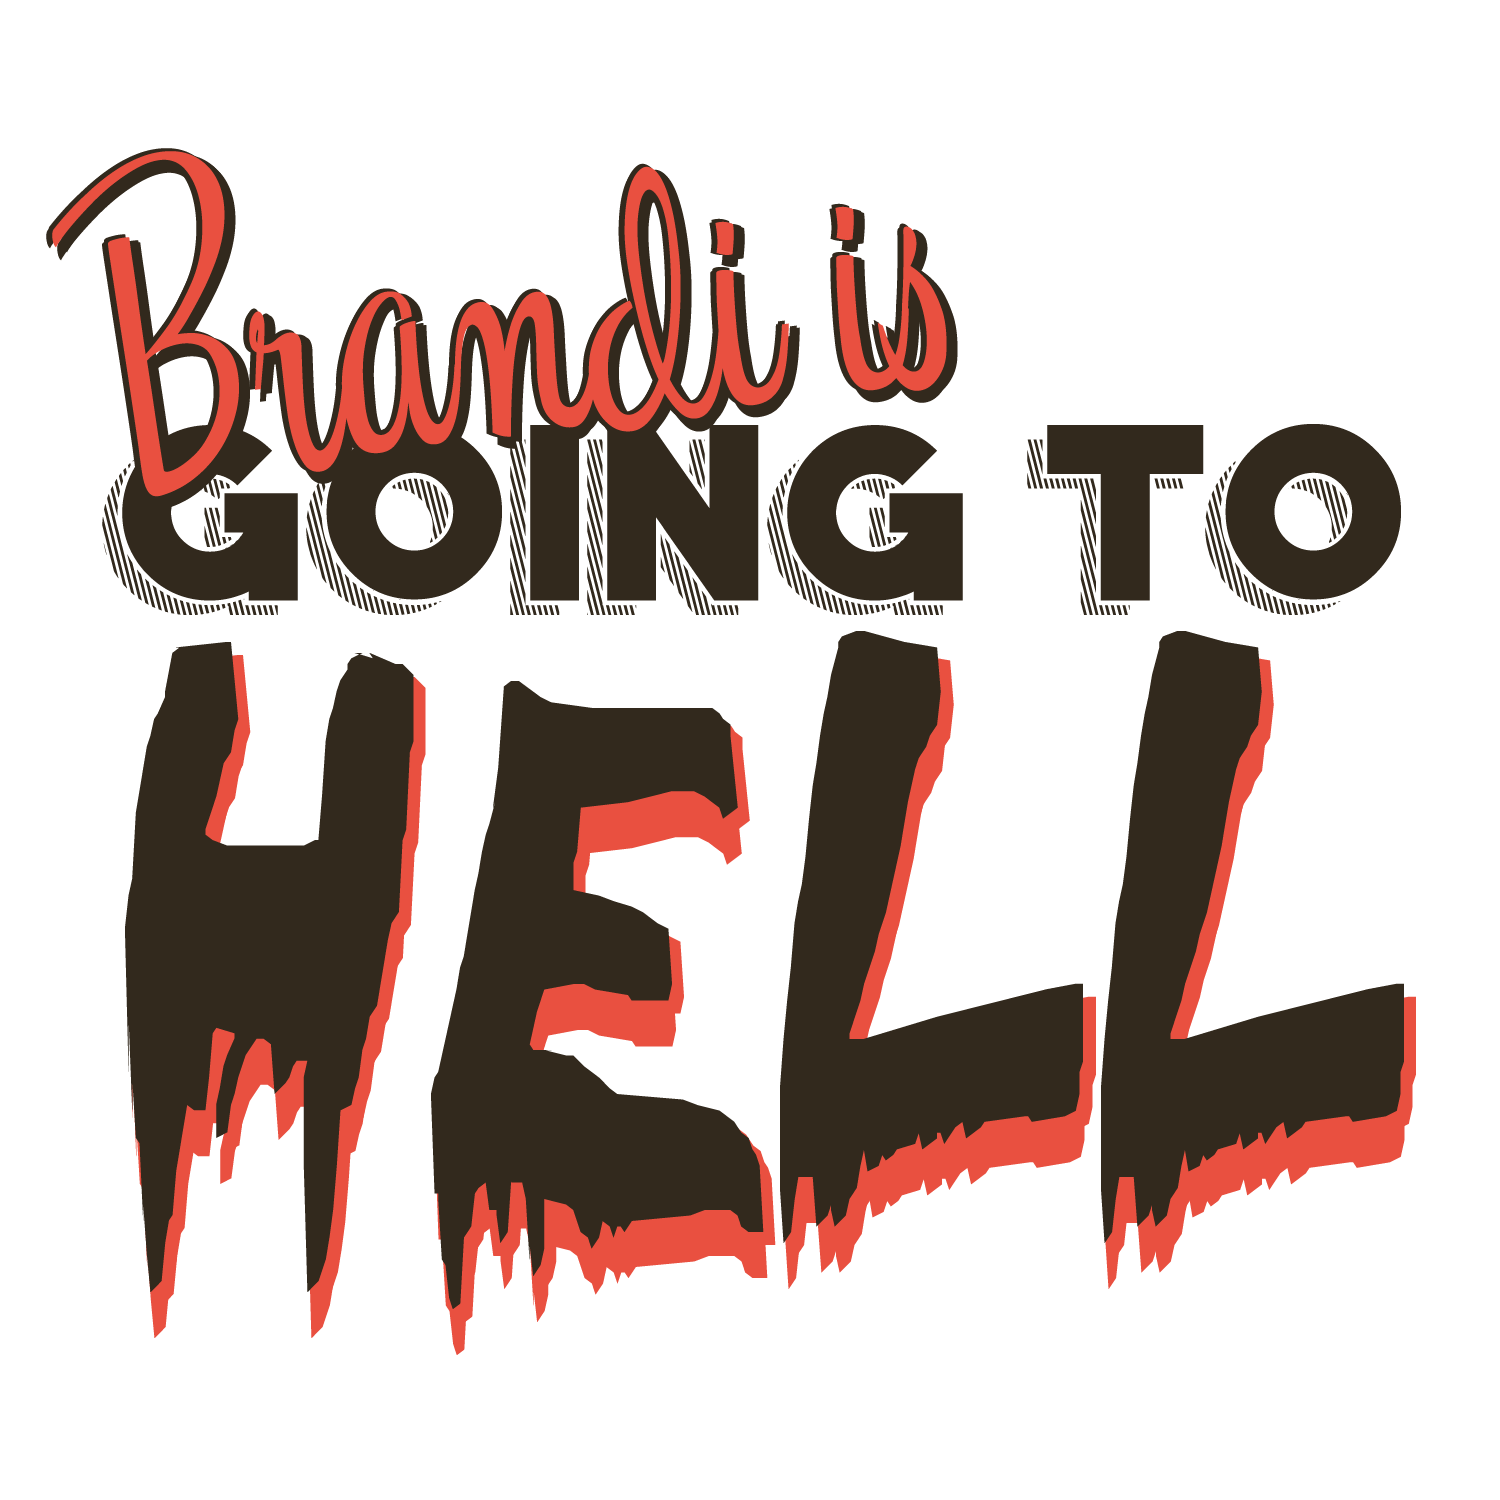 BRANDI IS GOING TO HELL